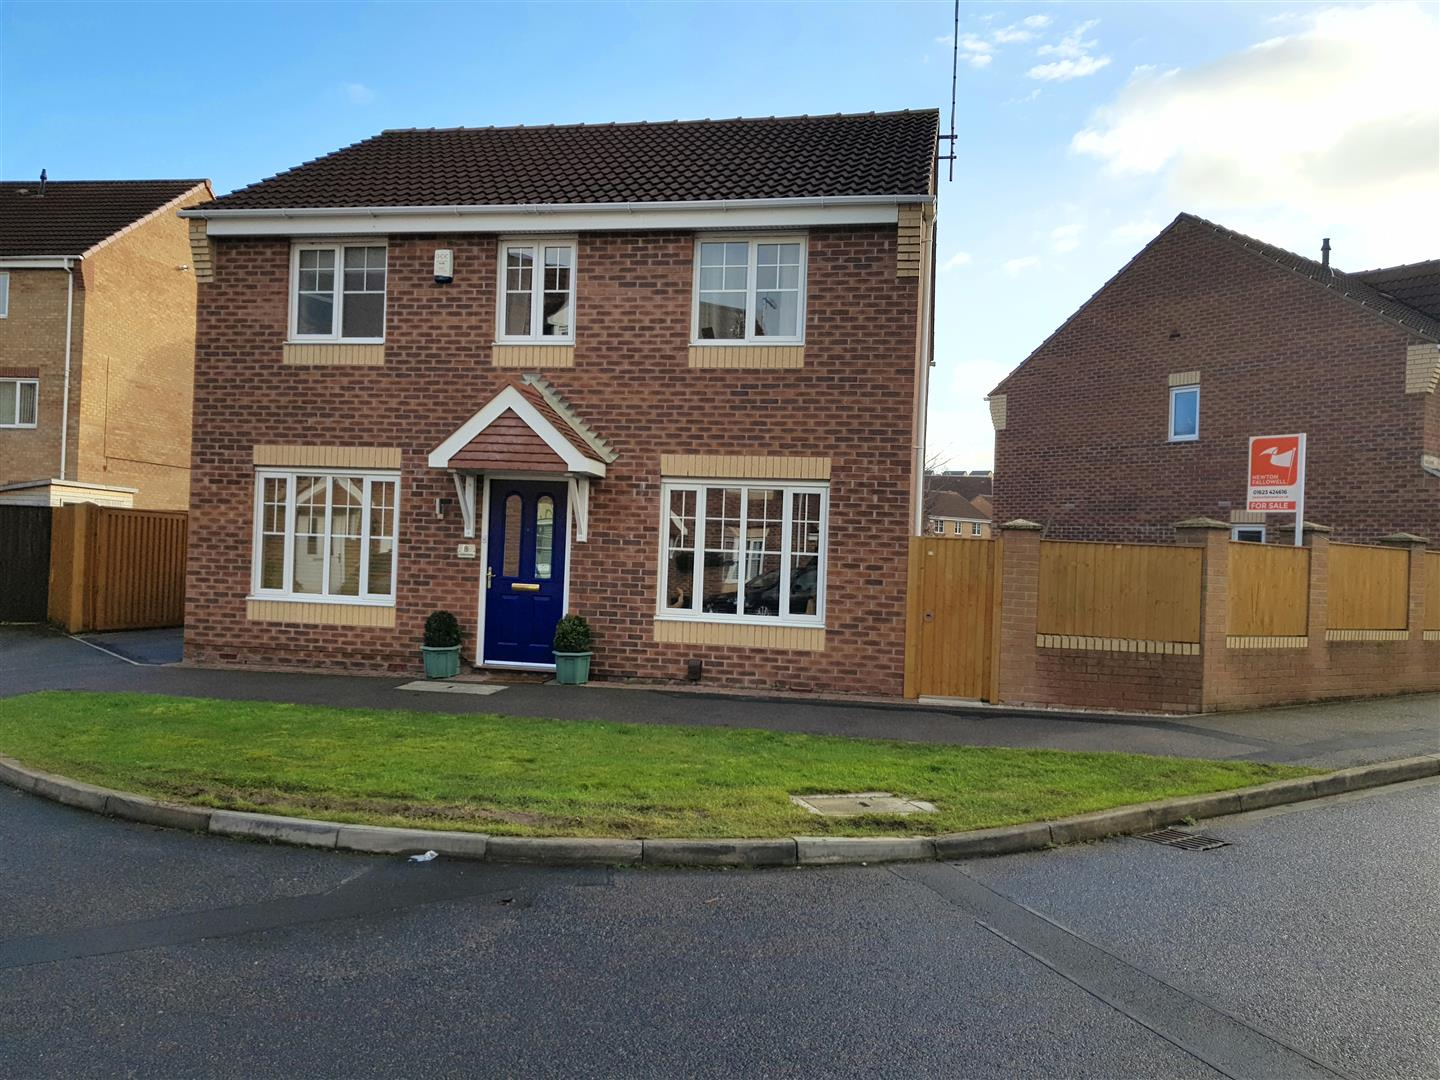 4 Bedrooms Detached House for sale in Curbar Close, Mansfield